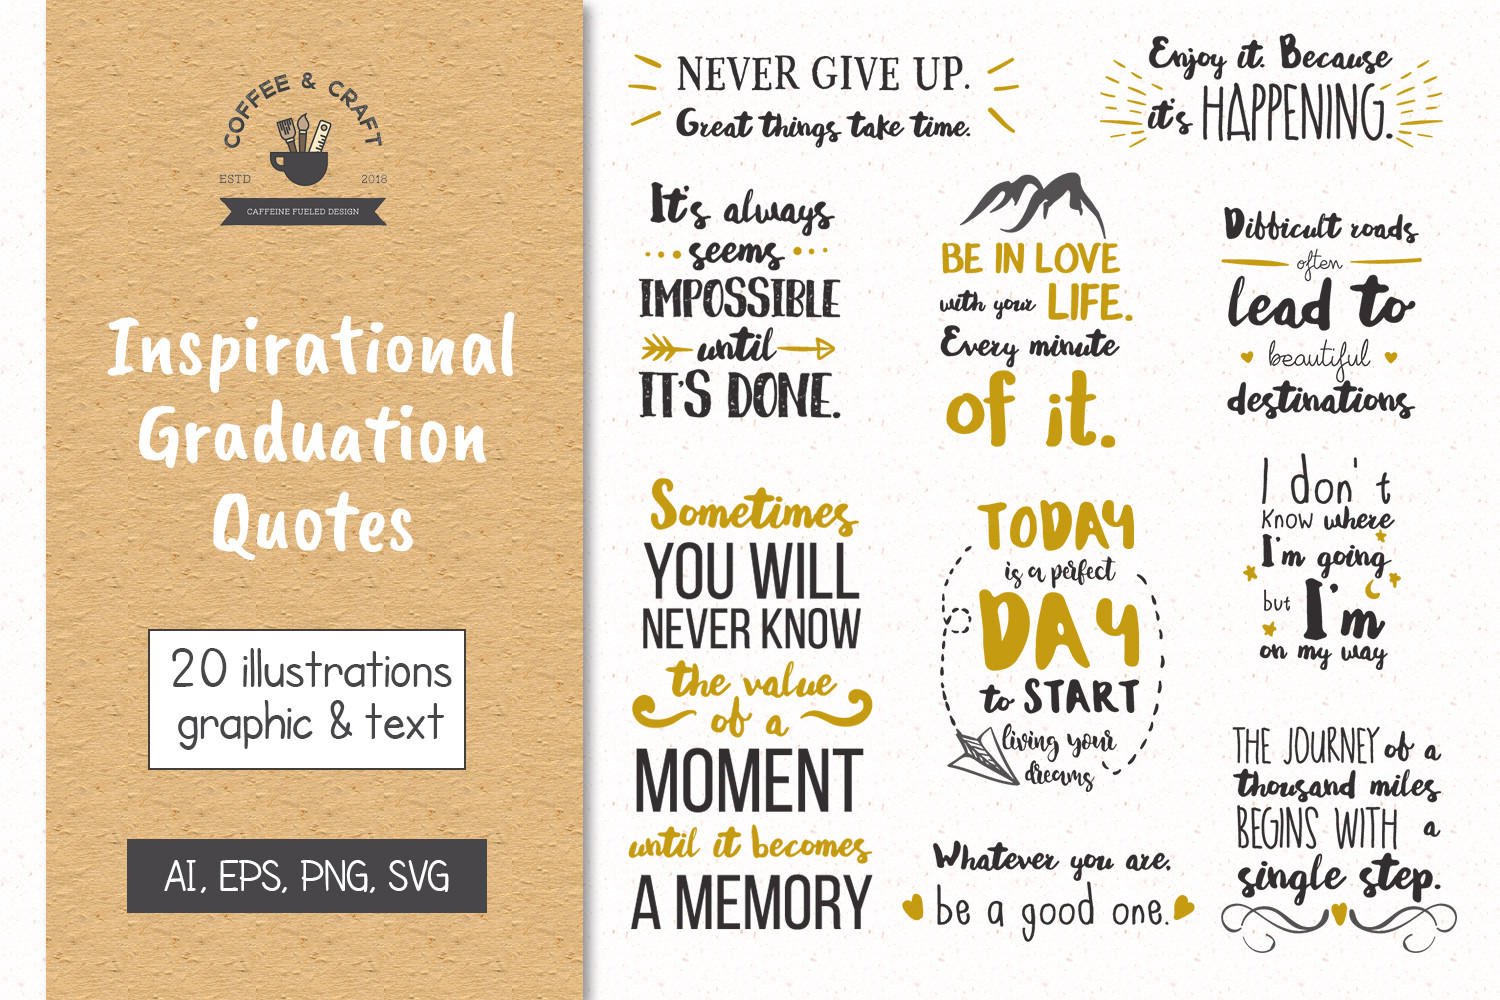 Graduation Quotes  Inspirational Graduation Quotes